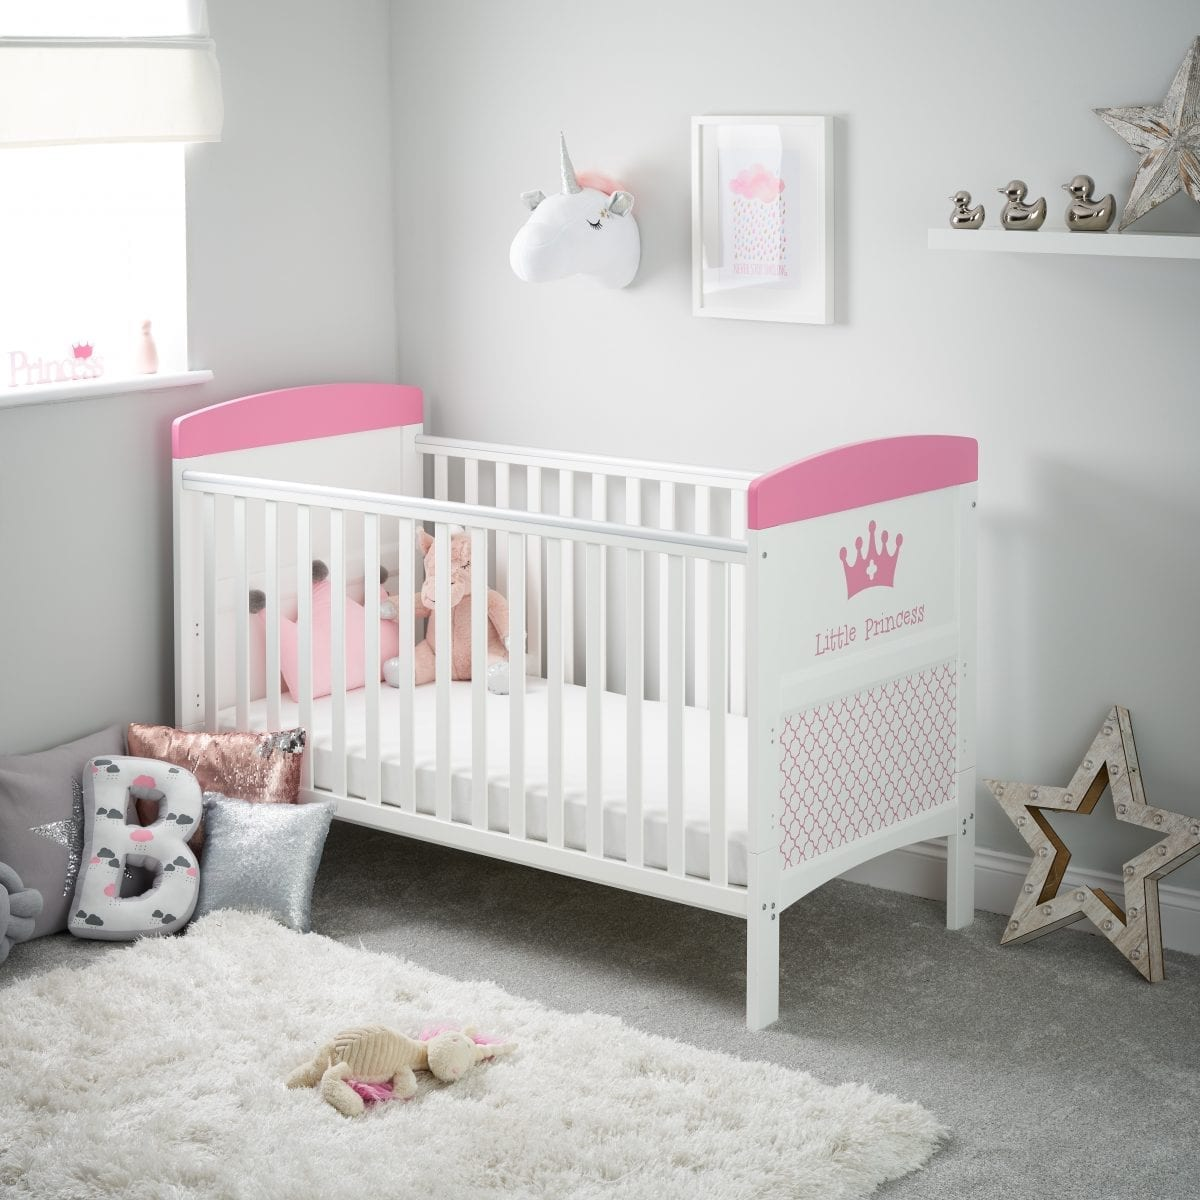 Grace Inspire Cot Bed Little Princess